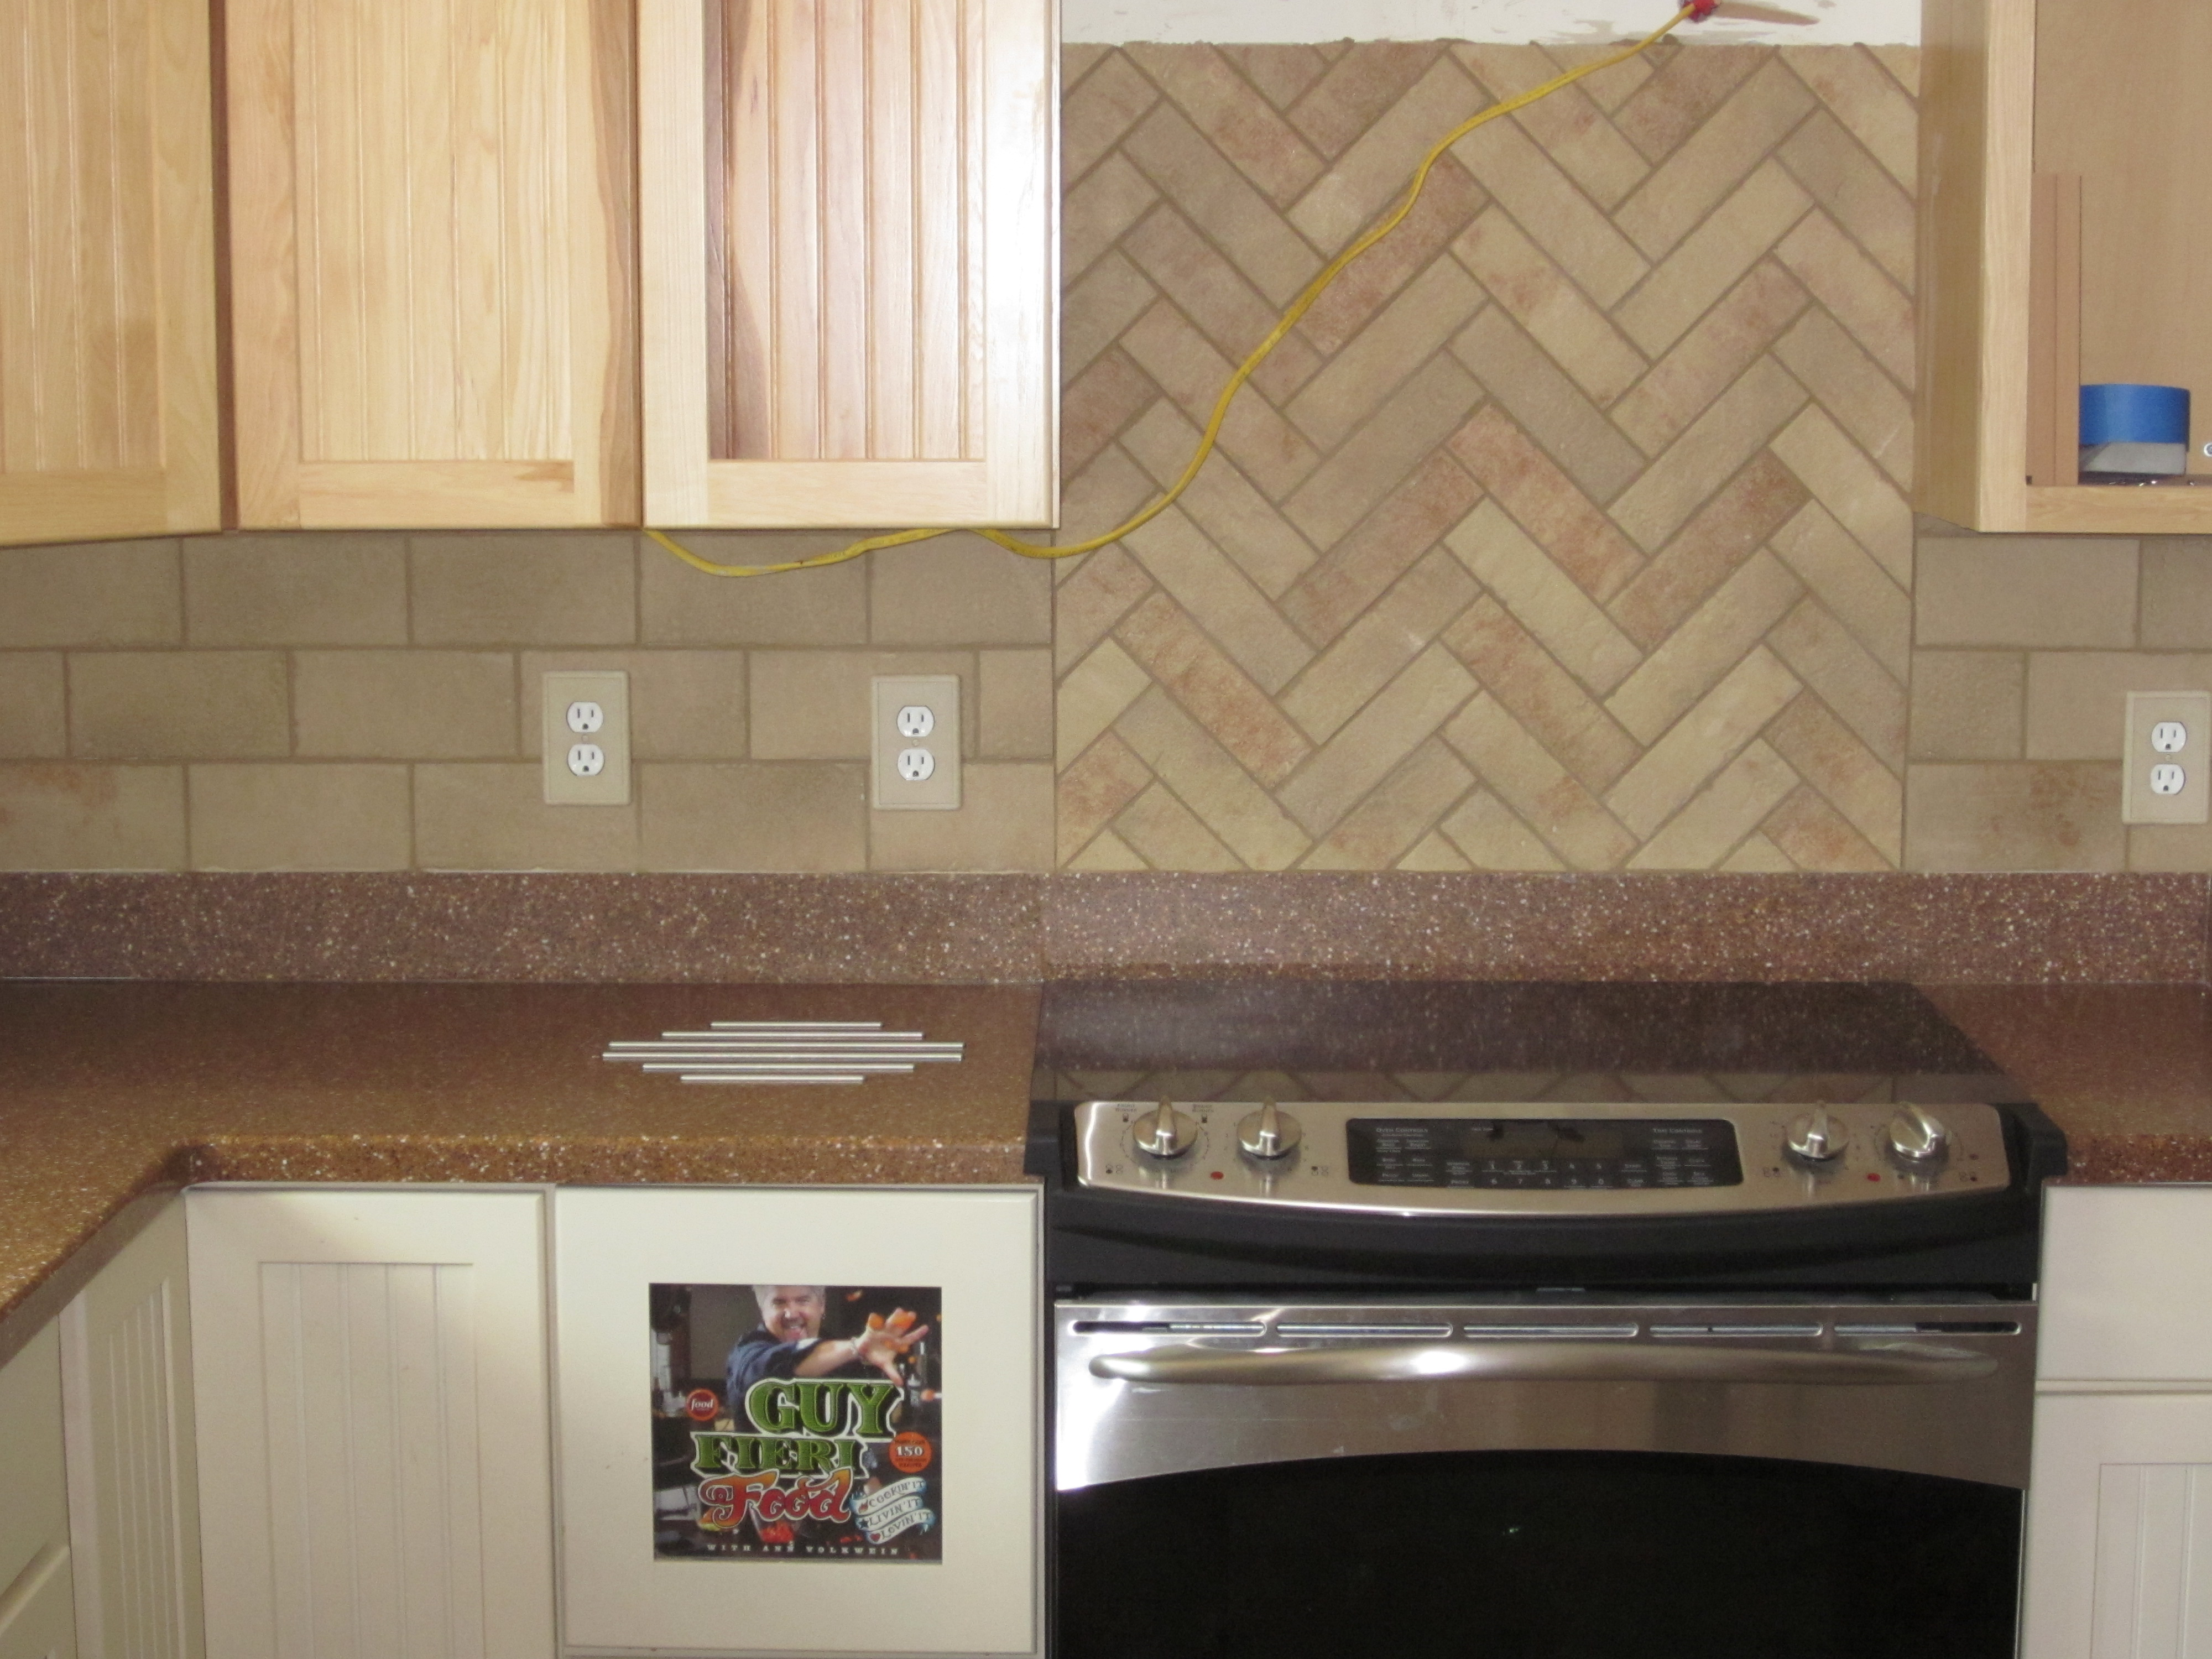 Tile Backsplash Bricklay Pattern Home Design Inside